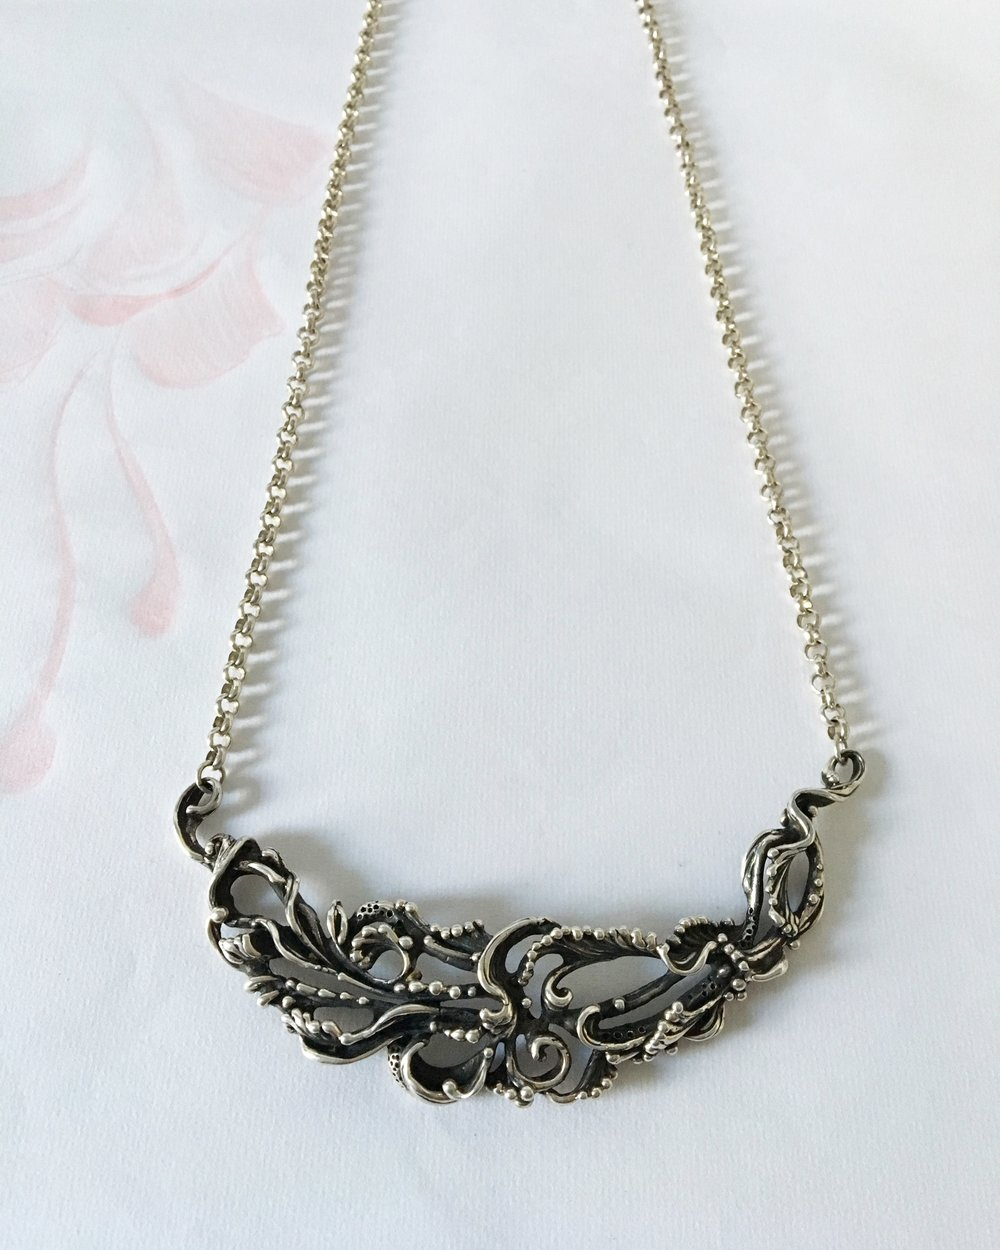 Sculptural Flourishing Necklace inspired by the waters running through our gardens, carved in wax and cast into recycled sterling silver by Colorado Artist Crystal Hartman.